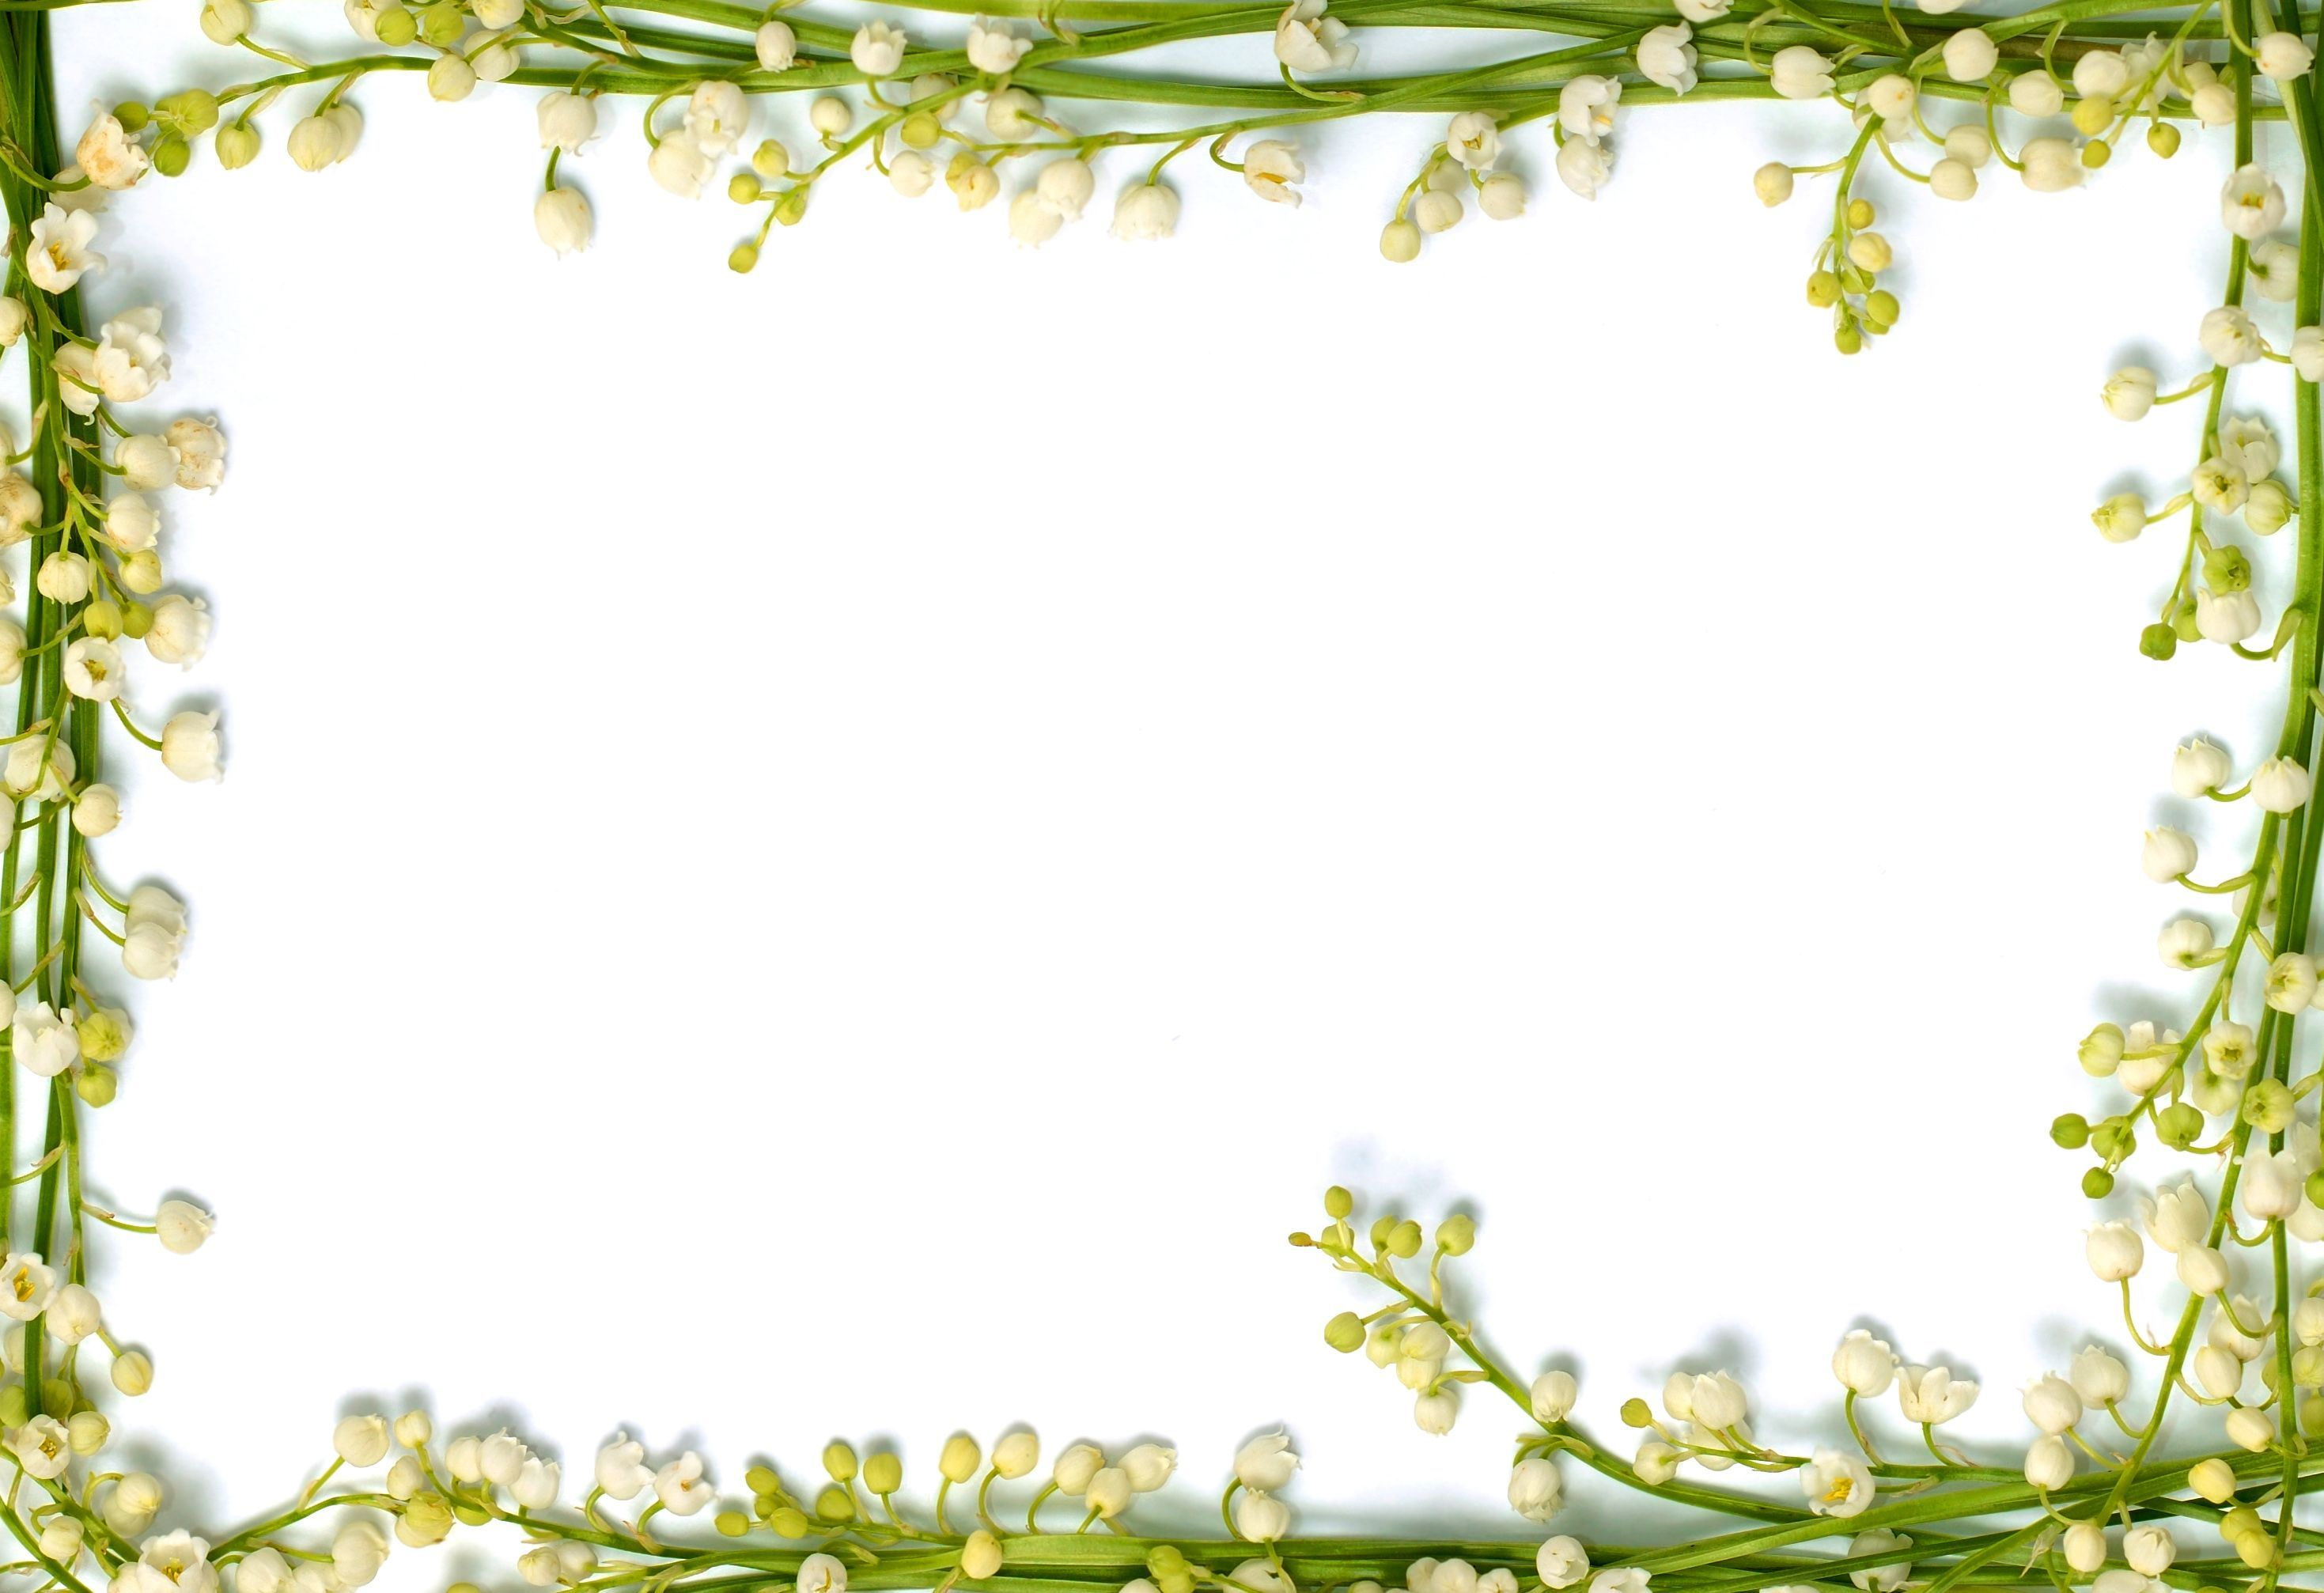 Free Frames | Texture Backgrounds - Funeral Prayer and Memorial ...